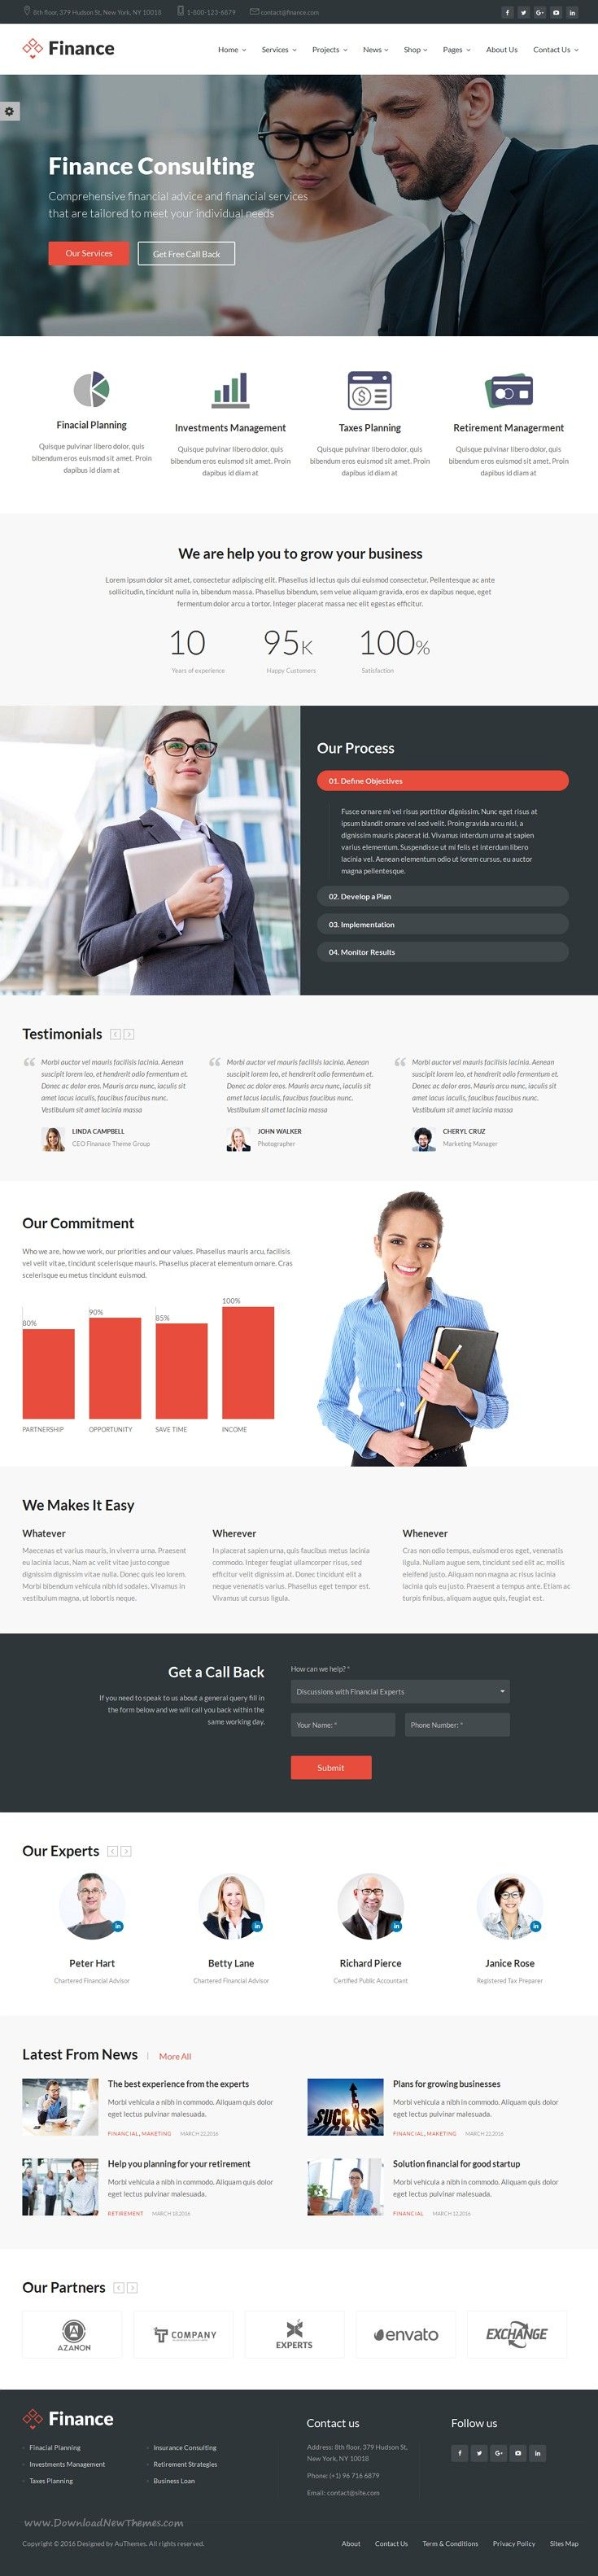 Finance is best Bootstrap HTML5 #Template for #corporate #website like Financial Advisor, Accountant, Consulting Firms, insurance, loan, tax help, Investment firm etc.